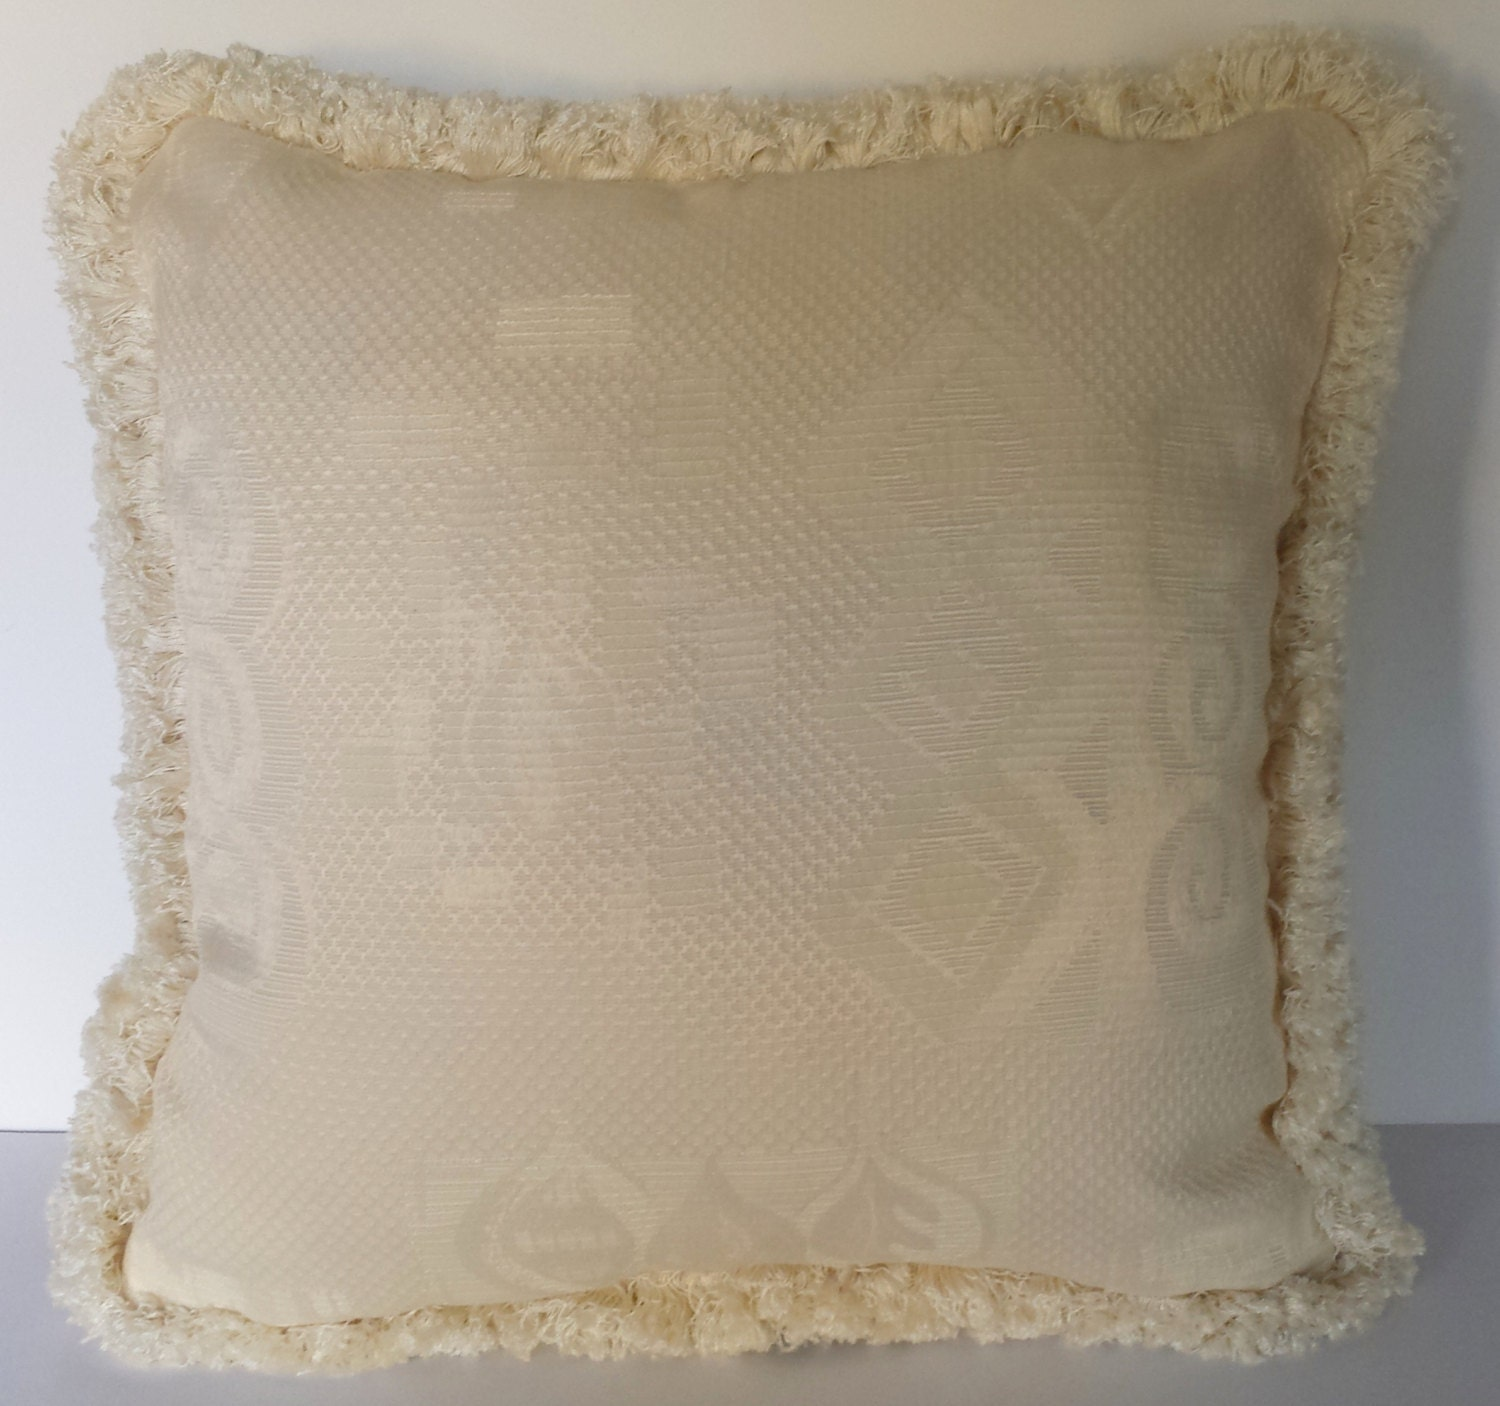 Decorative Pillows With Fringe Part - 47: ?zoom